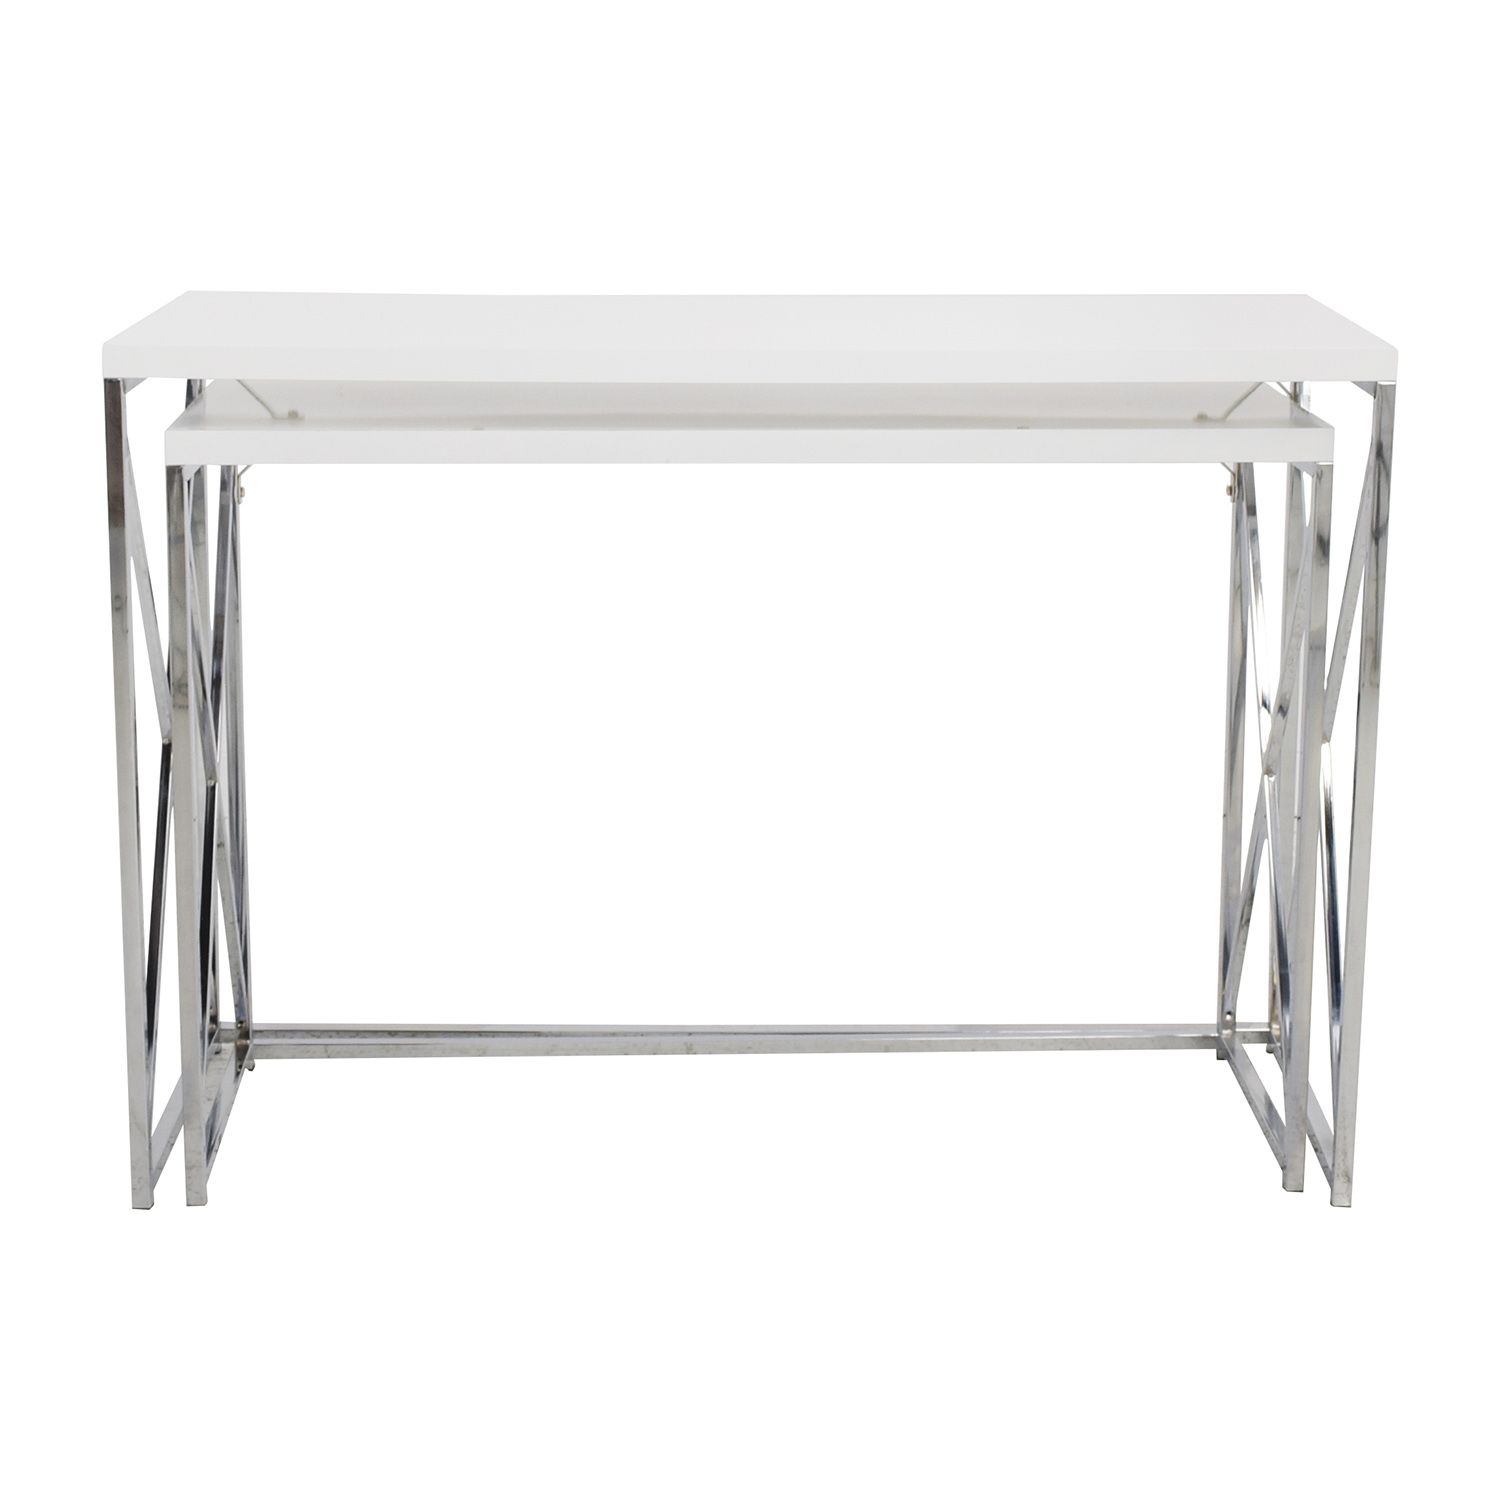 Monarch Specialties Monarch Specialties White and Chrome Nesting Console Tables for sale